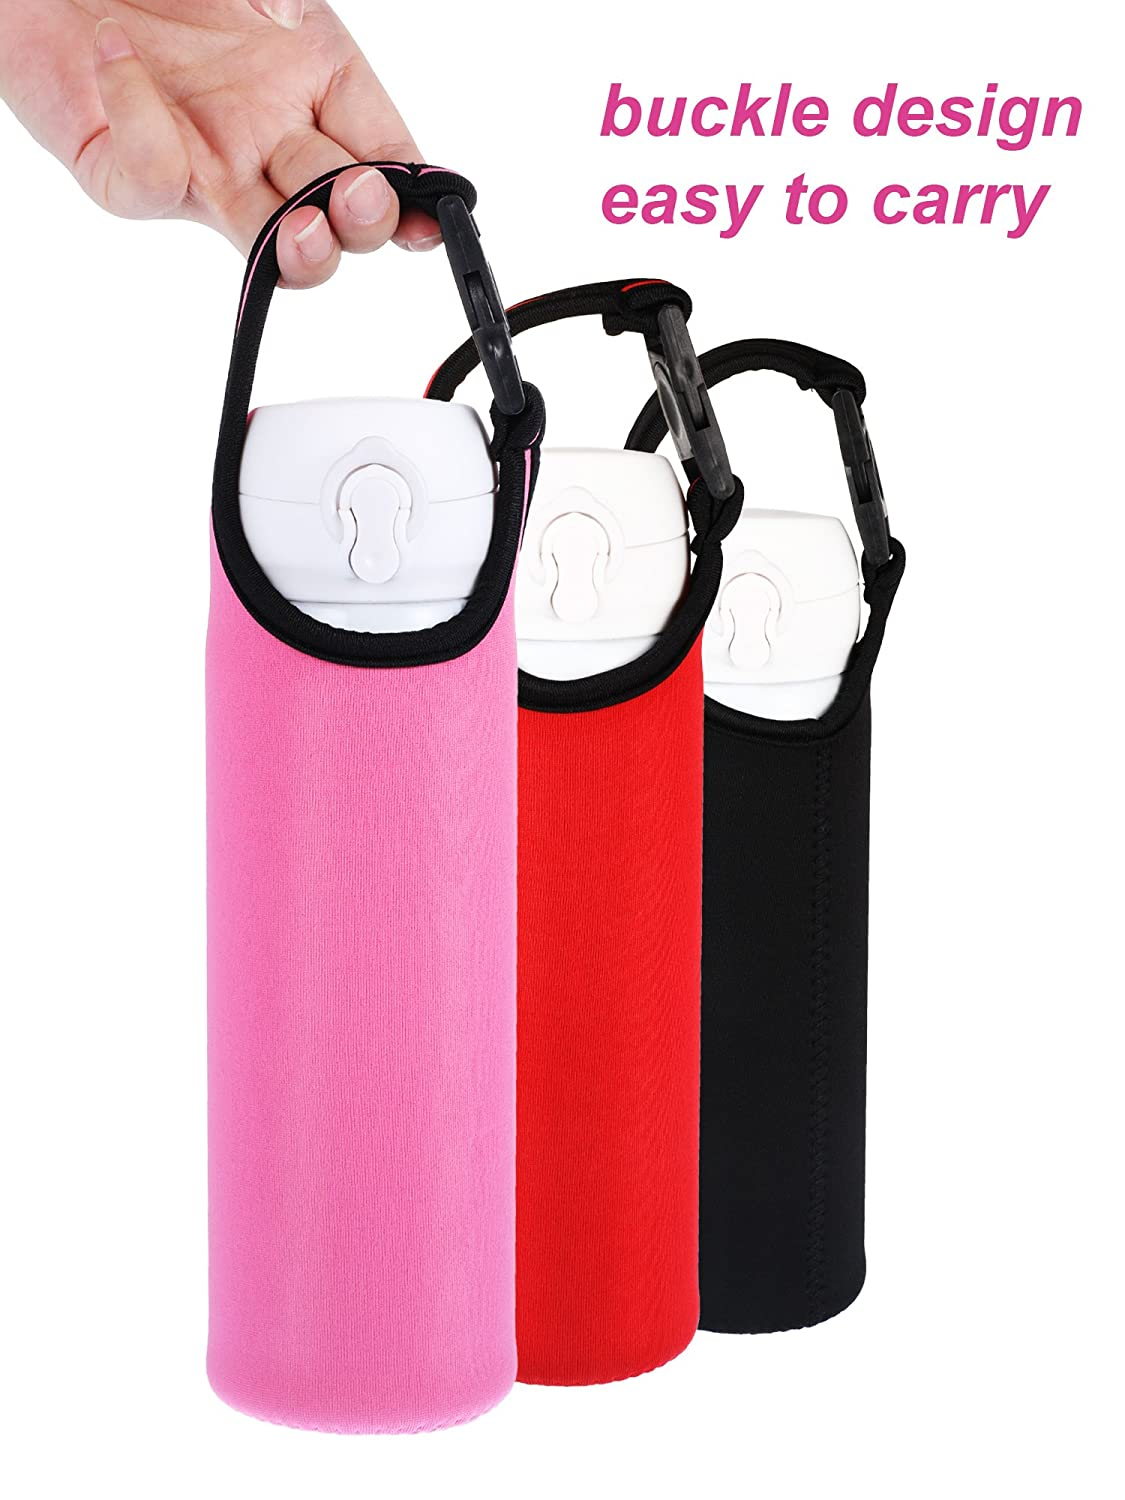 5 Colors Chengu 5 Pieces Water Bottle Sleeve Neoprene Cover Portable Bottle Holder Strap with Buckle for 500-700 ml Bottle Carriers